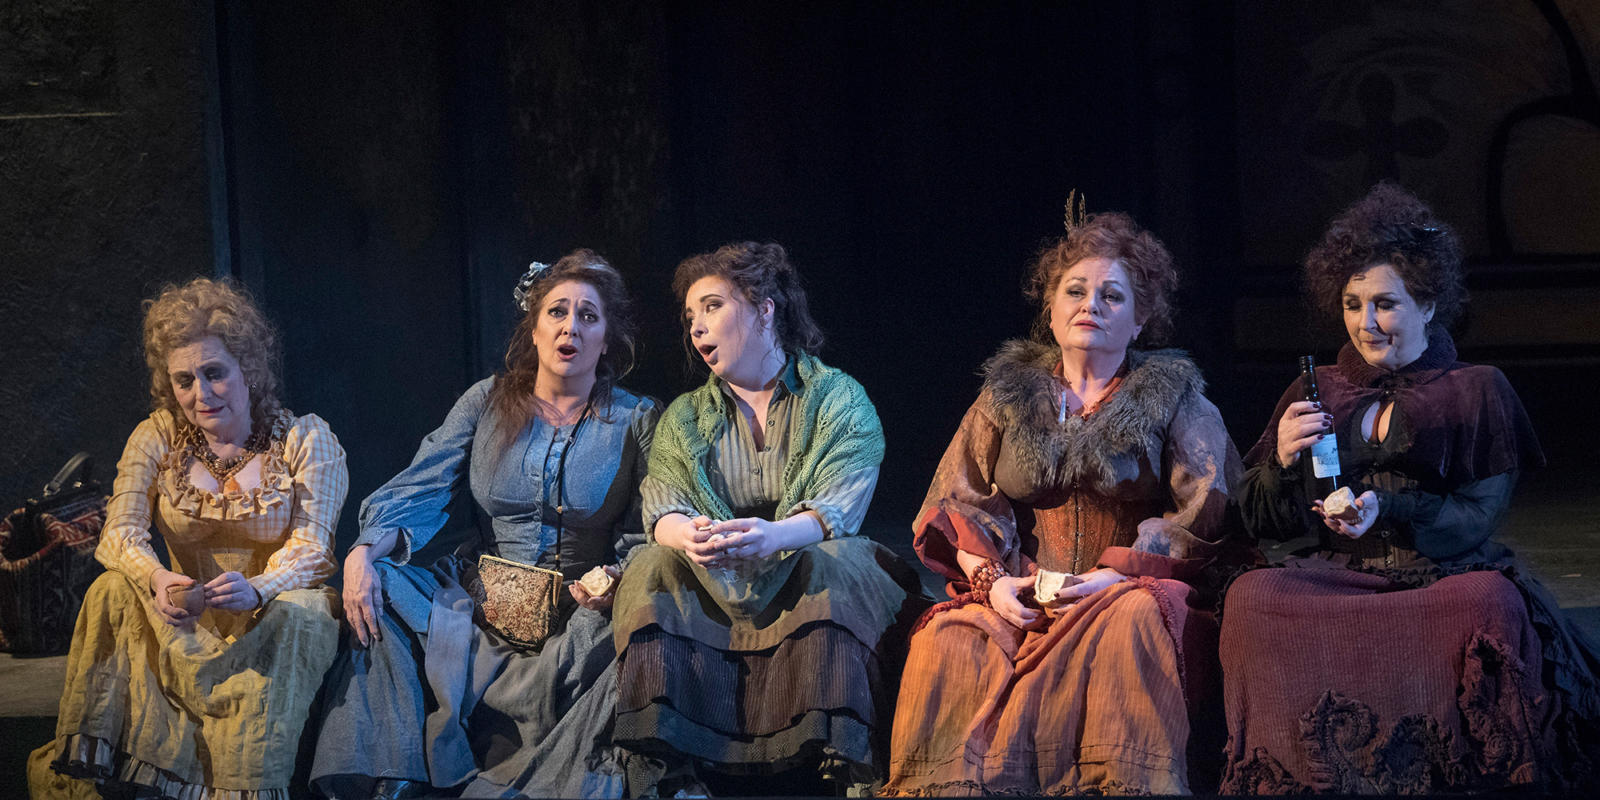 ENO 2018/19 Jack the Ripper: The Women of Whitechapel: (from left to right) Janis Kelly, Marie McLaughlin, Natalya Romaniw, Susan Bullock and Lesley Garrett © Alastair Muir